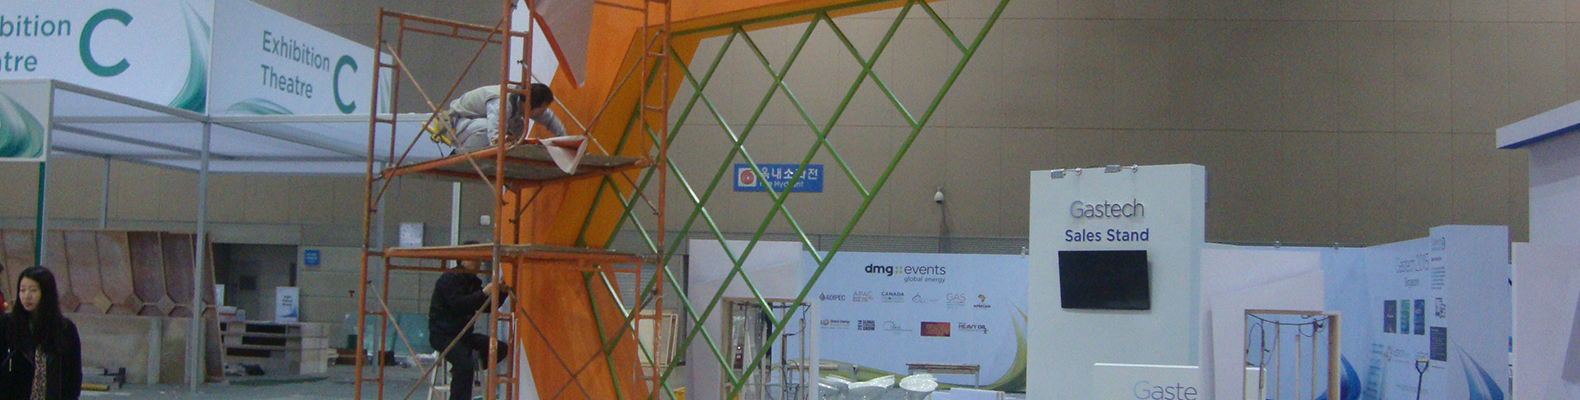 Exhibition-Stand-Construction-Site